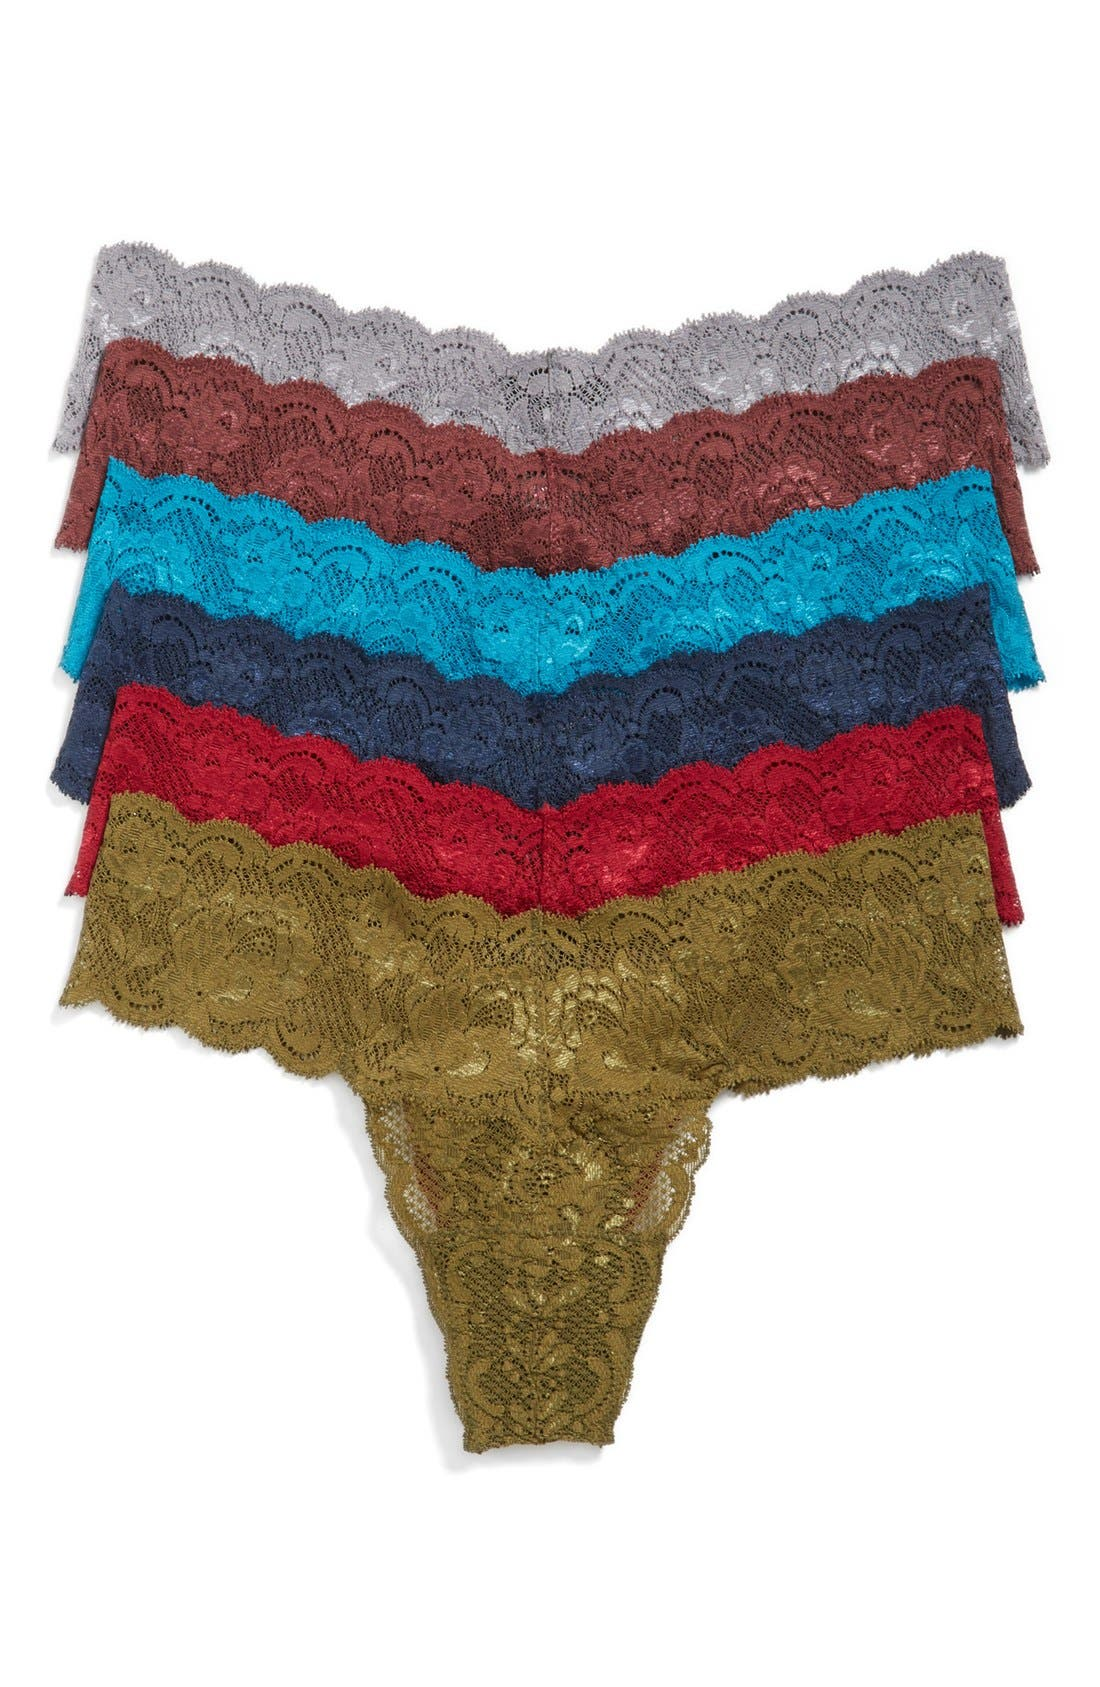 Alternate Image 1 Selected - Cosabella 'Never Say Never Cutie' Low Rise Lace Thong (6-Pack) (Online Only)